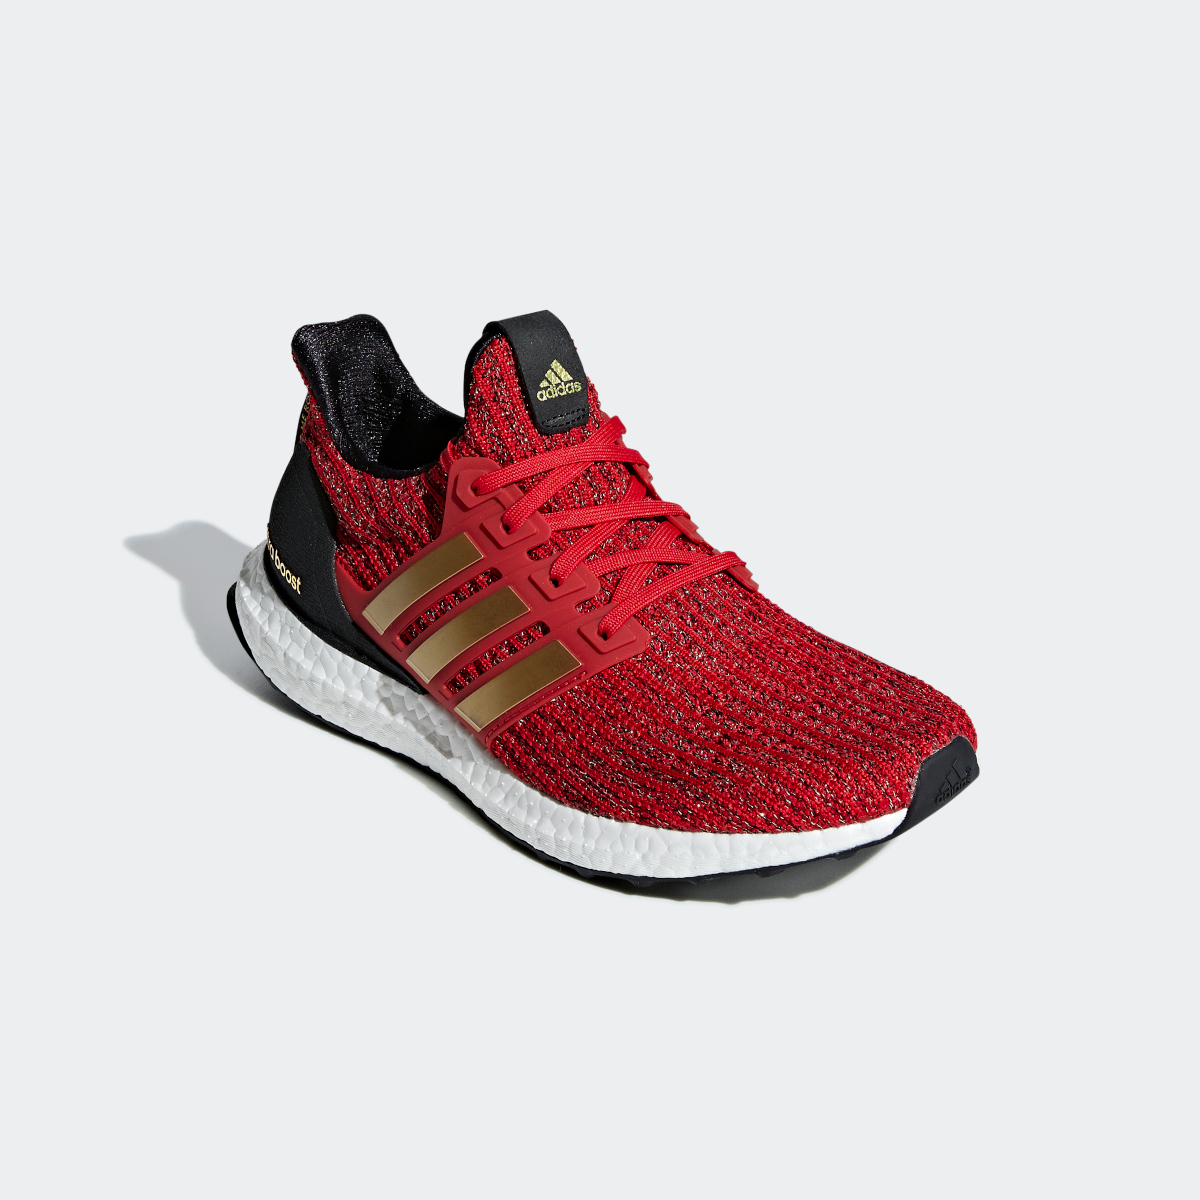 Ultraboost x Game of Thrones: Lannister